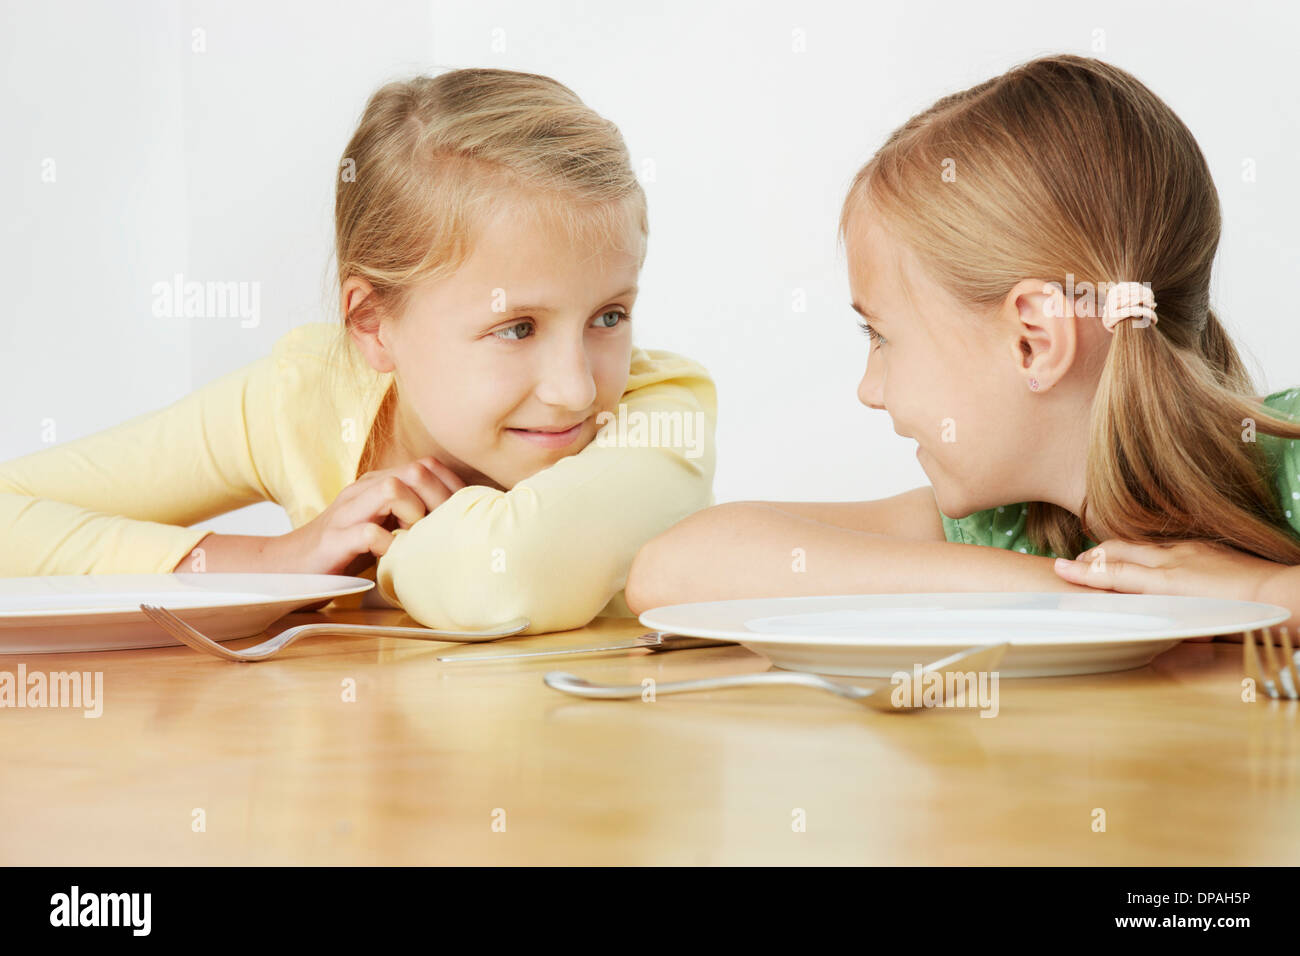 Two girls leaning on table with empty plates - Stock Image